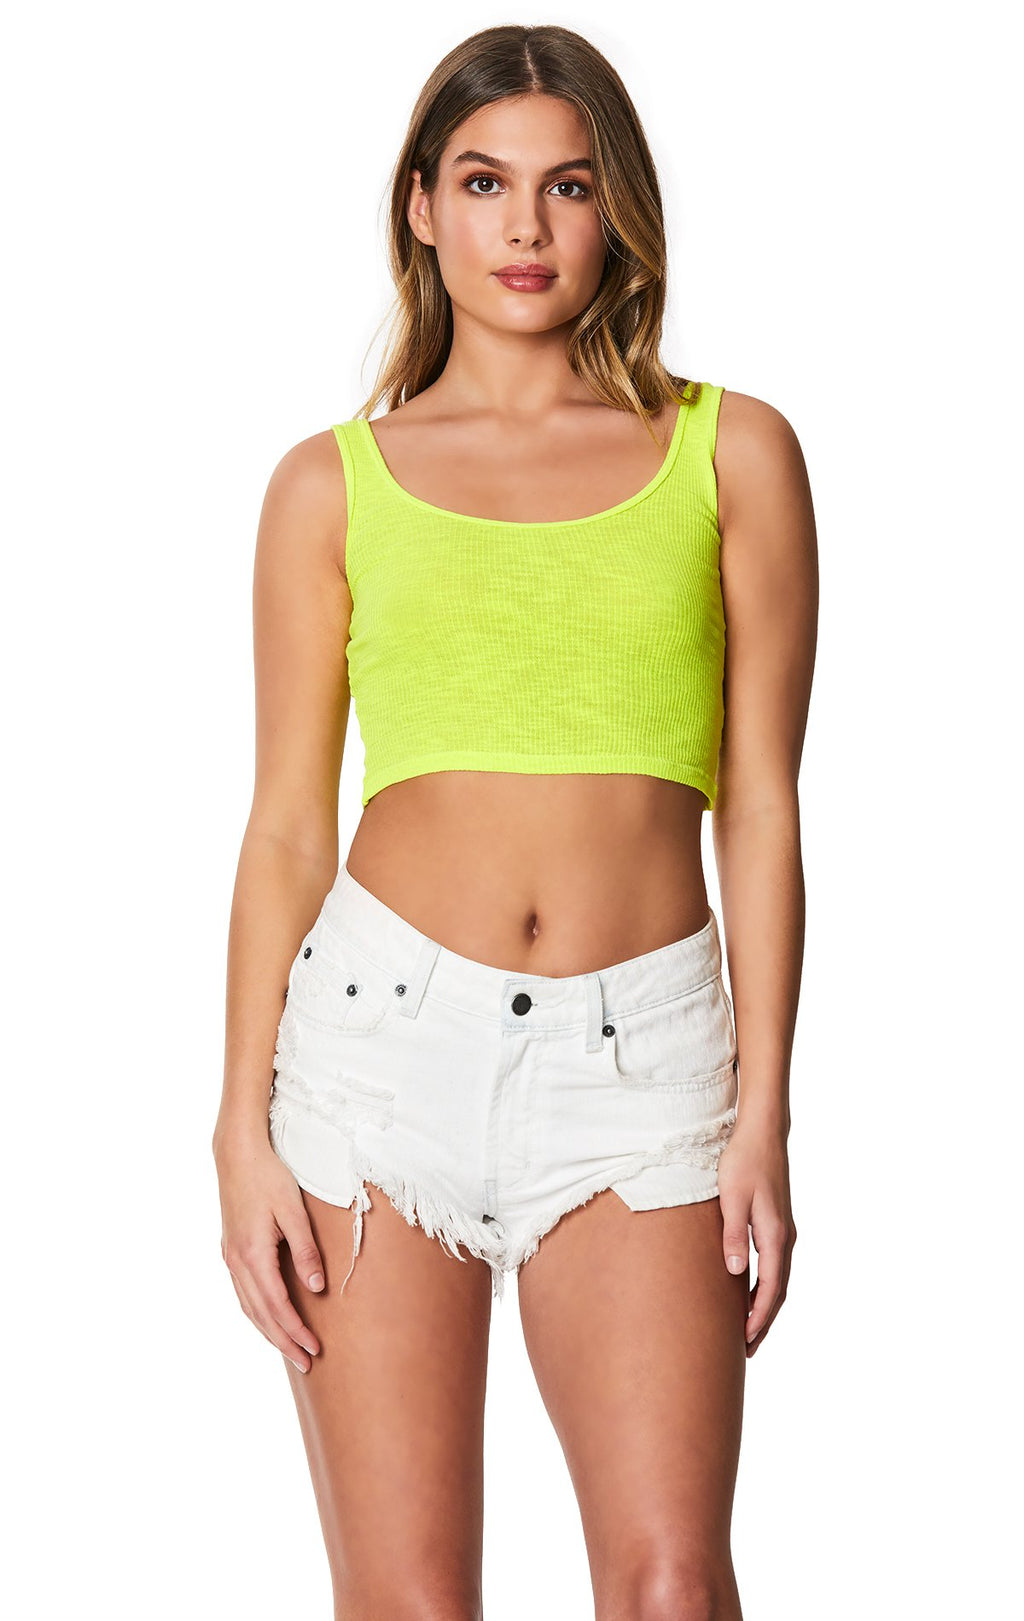 Emma & Sam: NEON POOR BOY TANK - BASIC TANK